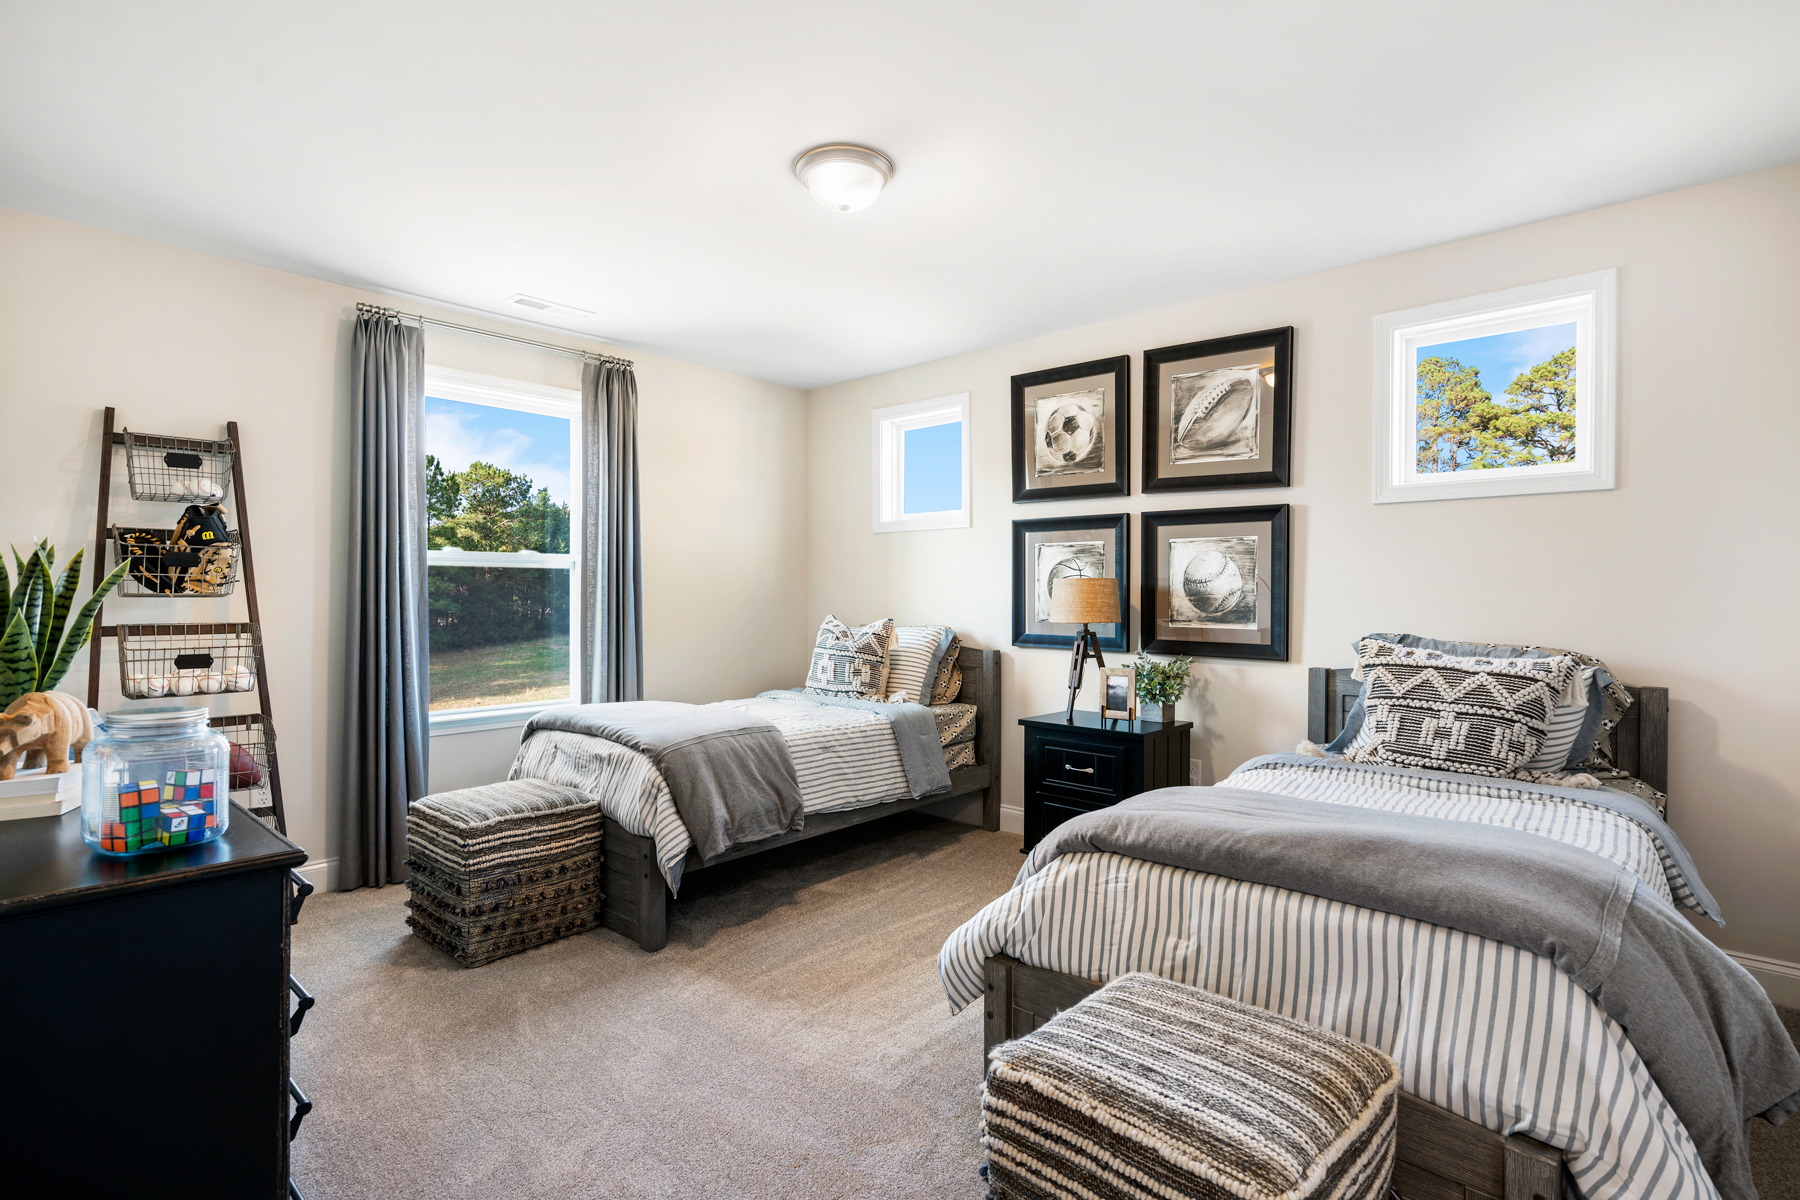 Parker Plan Bedroom at Ballentine Place in Holly Springs North Carolina by Mattamy Homes